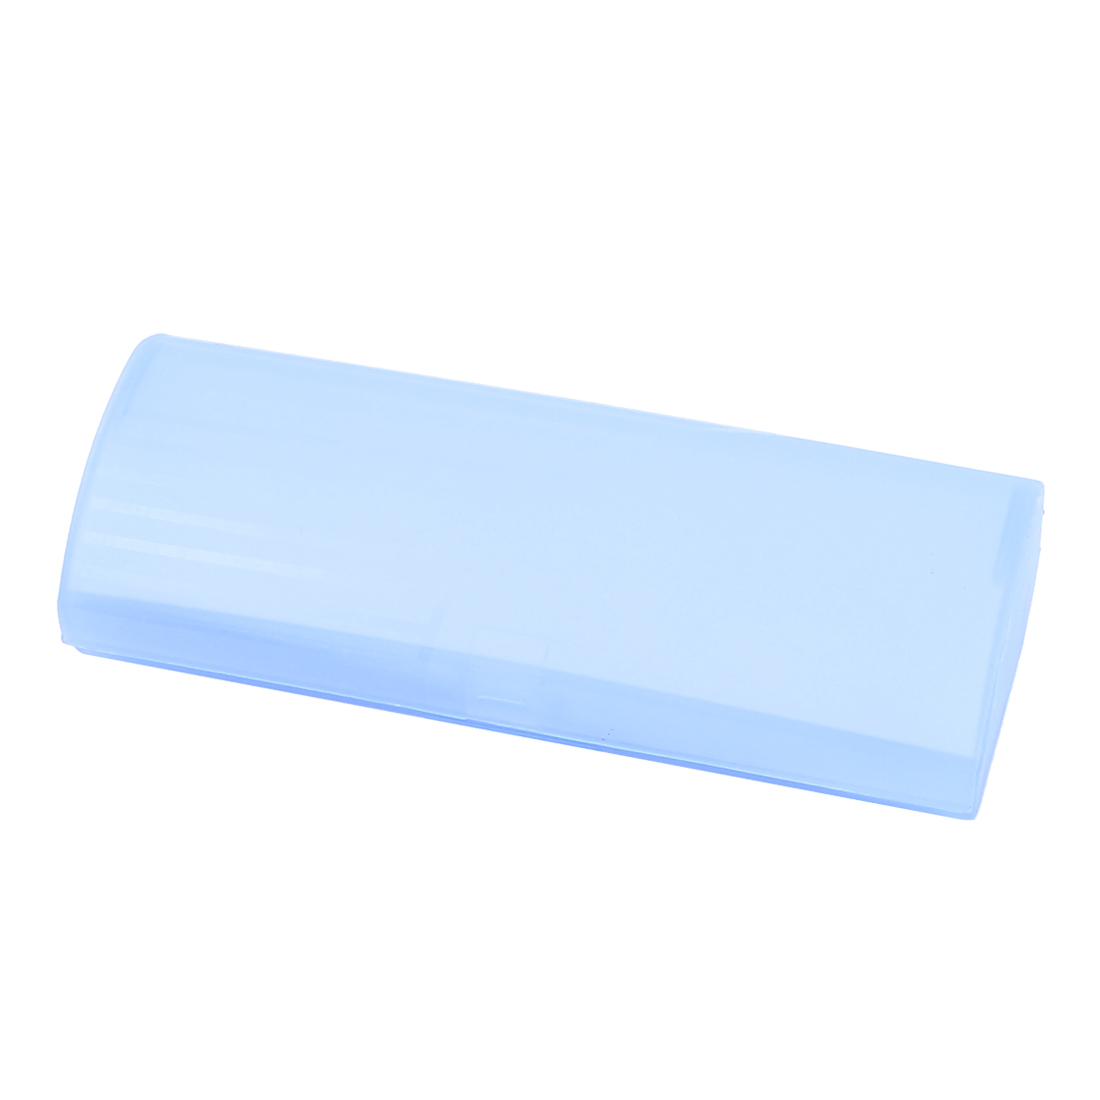 Plastic Eyewear Eyeglasses Case Holder Box Container Clear Light Blue